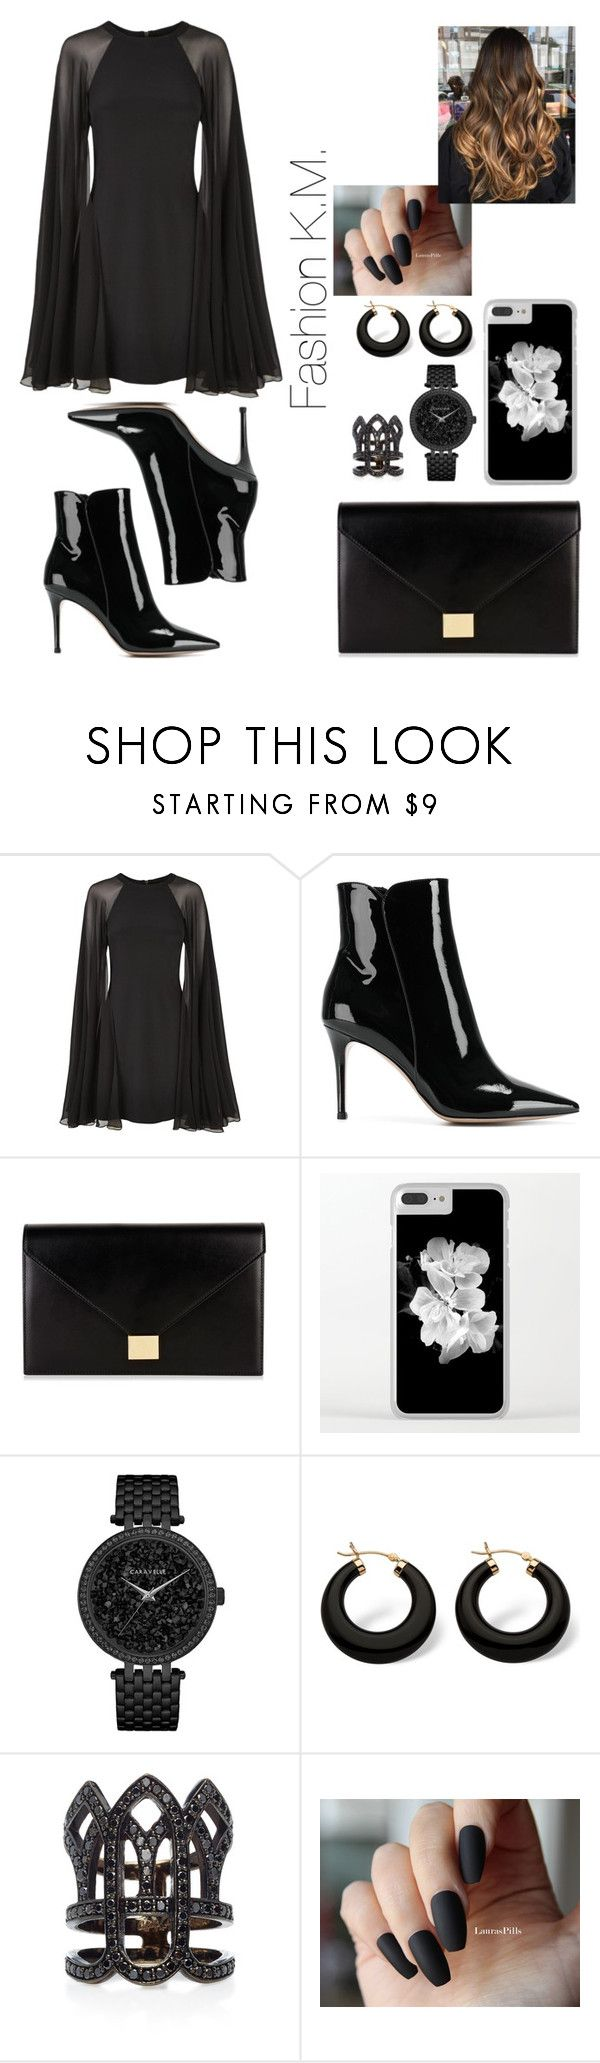 """""""♥Yes or No♥"""" by karinemarutyan ❤ liked on Polyvore featuring Karl Lagerfeld, Gianvito Rossi, Victoria Beckham, Caravelle by Bulova, Palm Beach Jewelry and Colette Jewelry"""